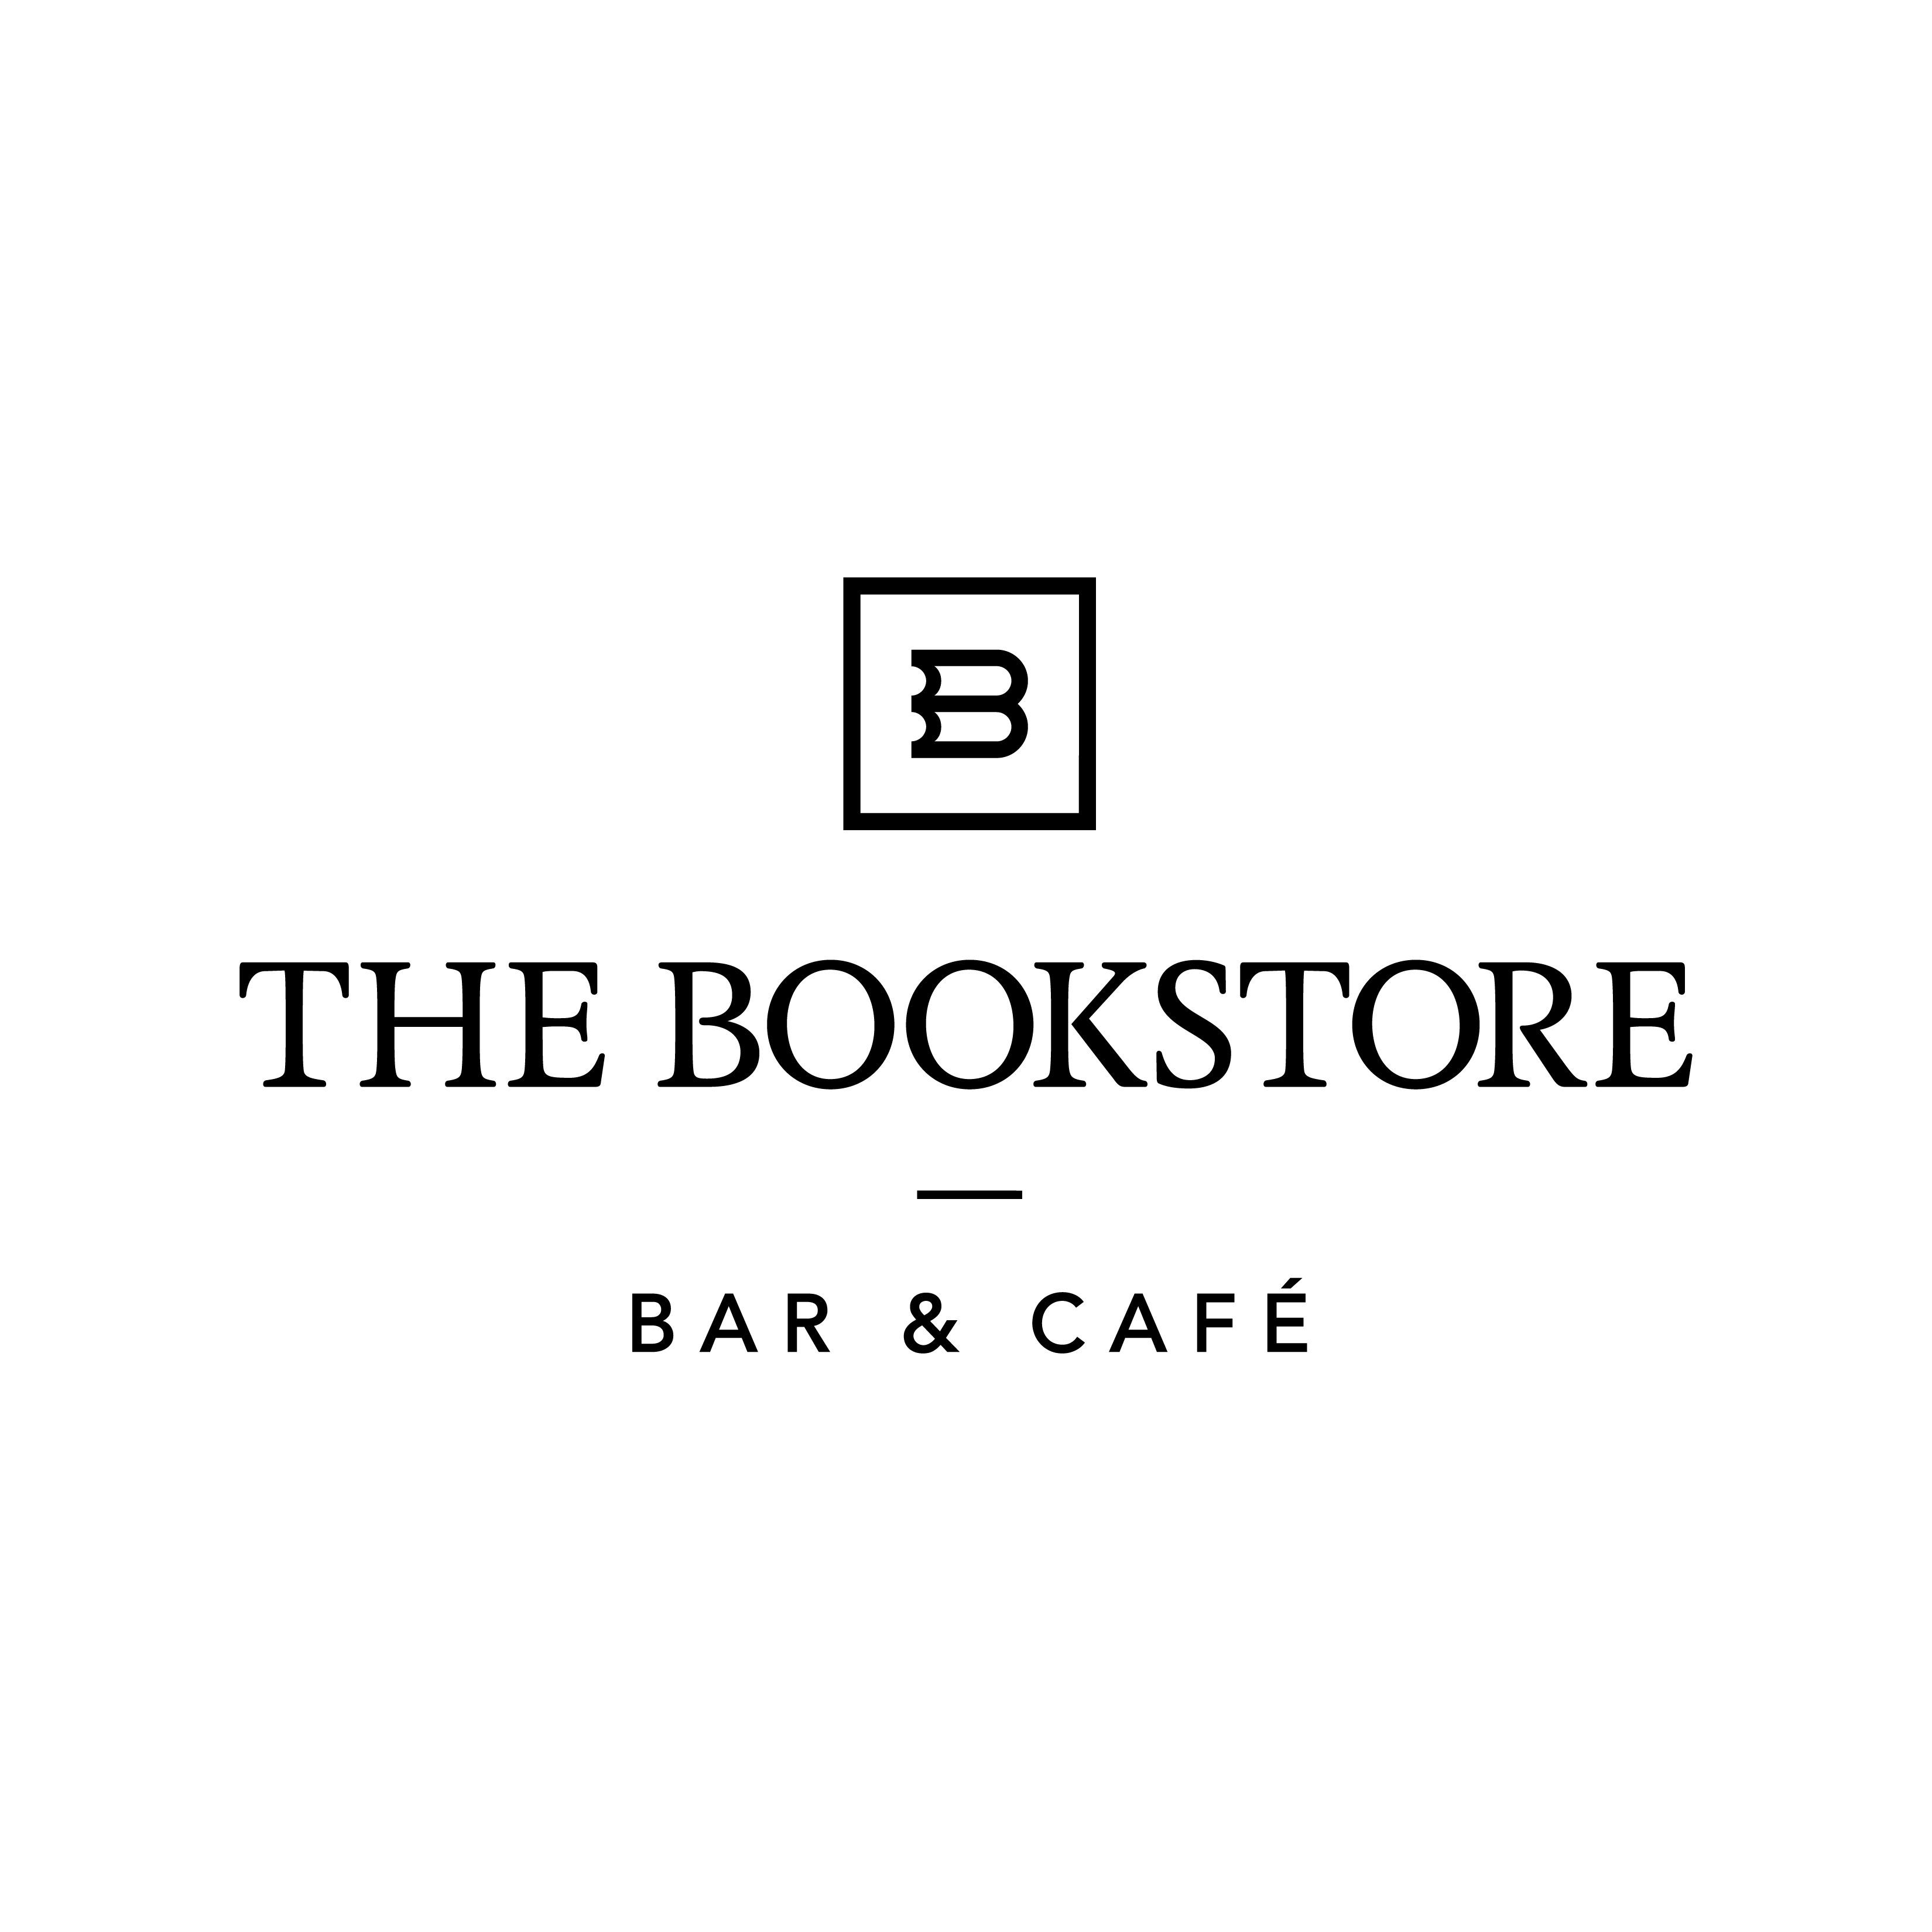 Bookstore Bar & Café